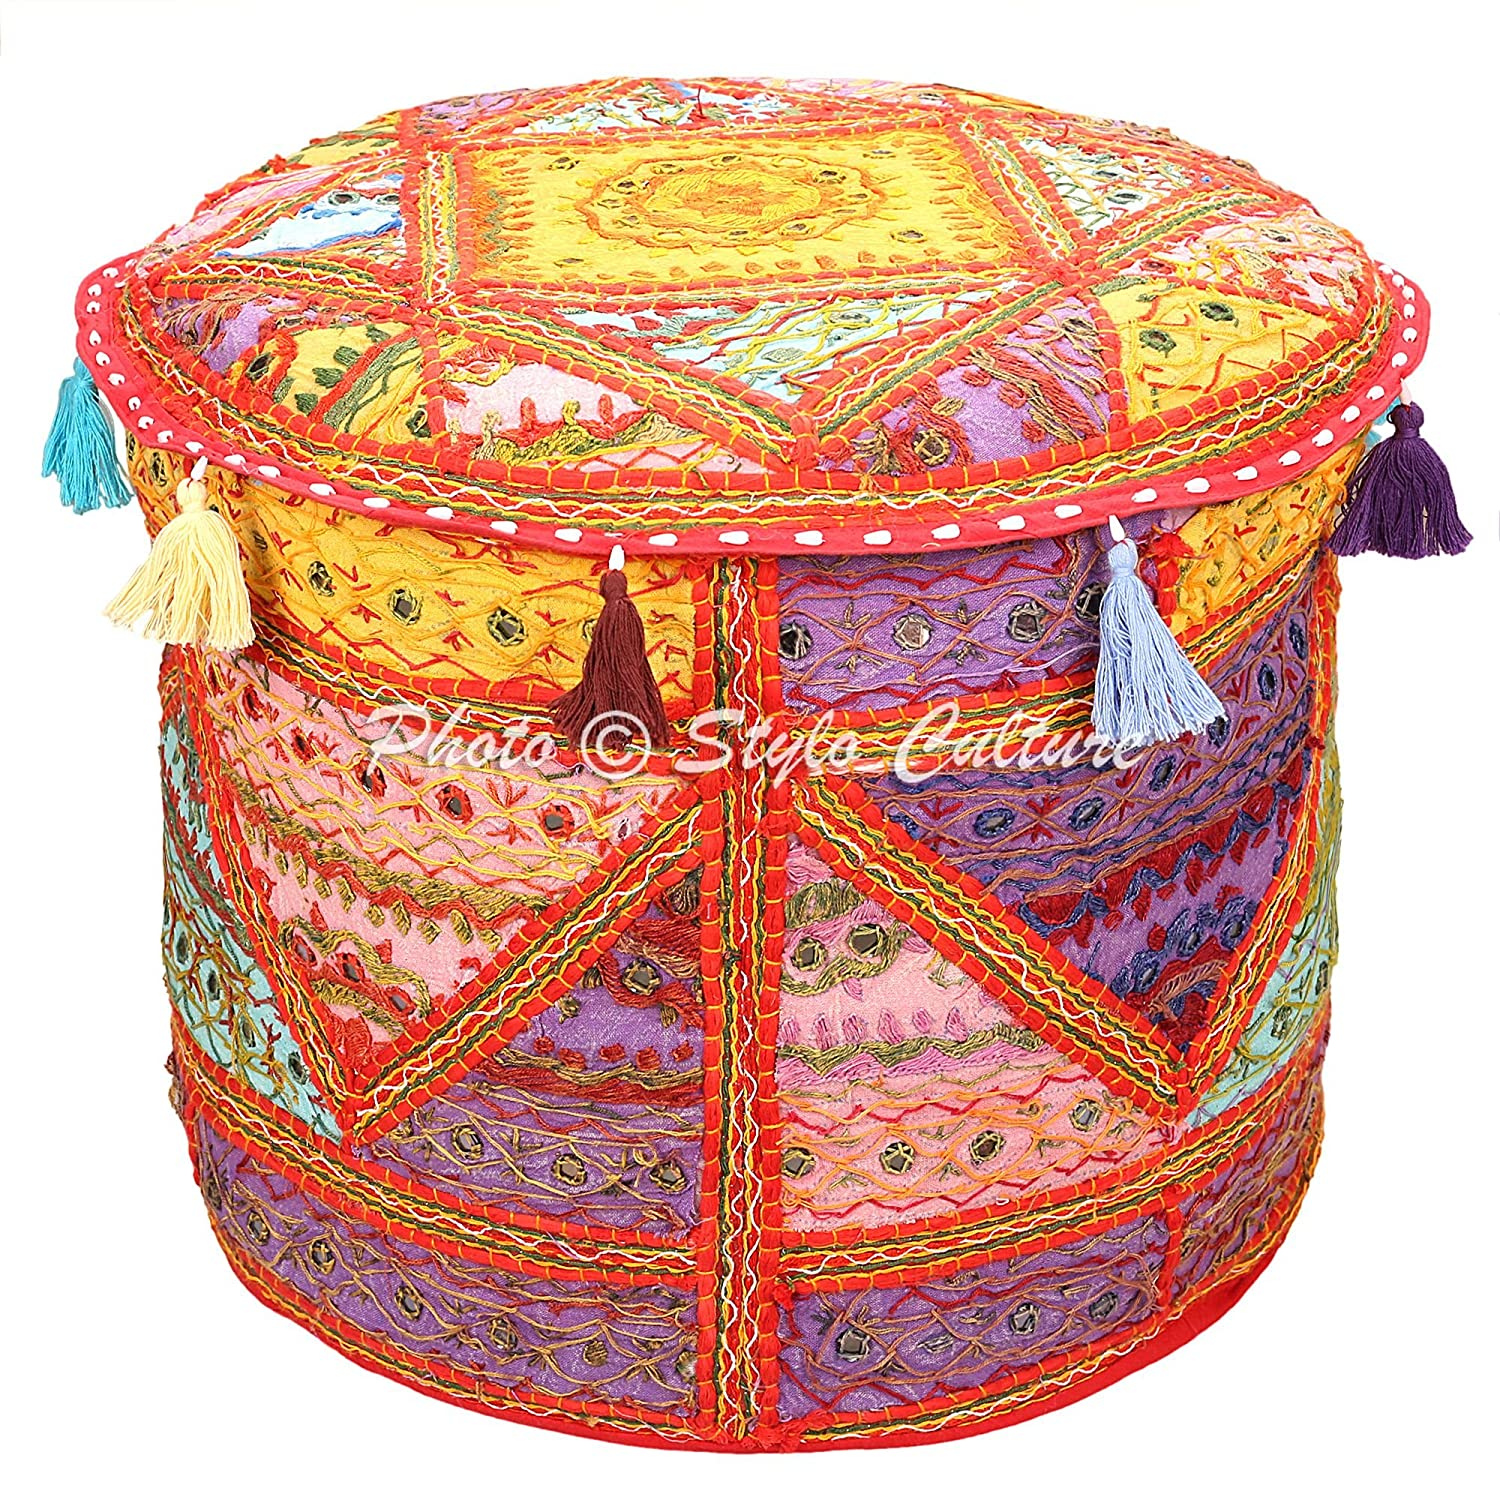 Stylo Culture Indian Vintage Pouf Ottoman Foot Stool Cover Round Embroidered Mirror Patchwork Pouffe Ottoman Cover Multicolored Cotton Traditional Furniture Footstool Seat Puff Cover (18x18x13) SC-POUF00062